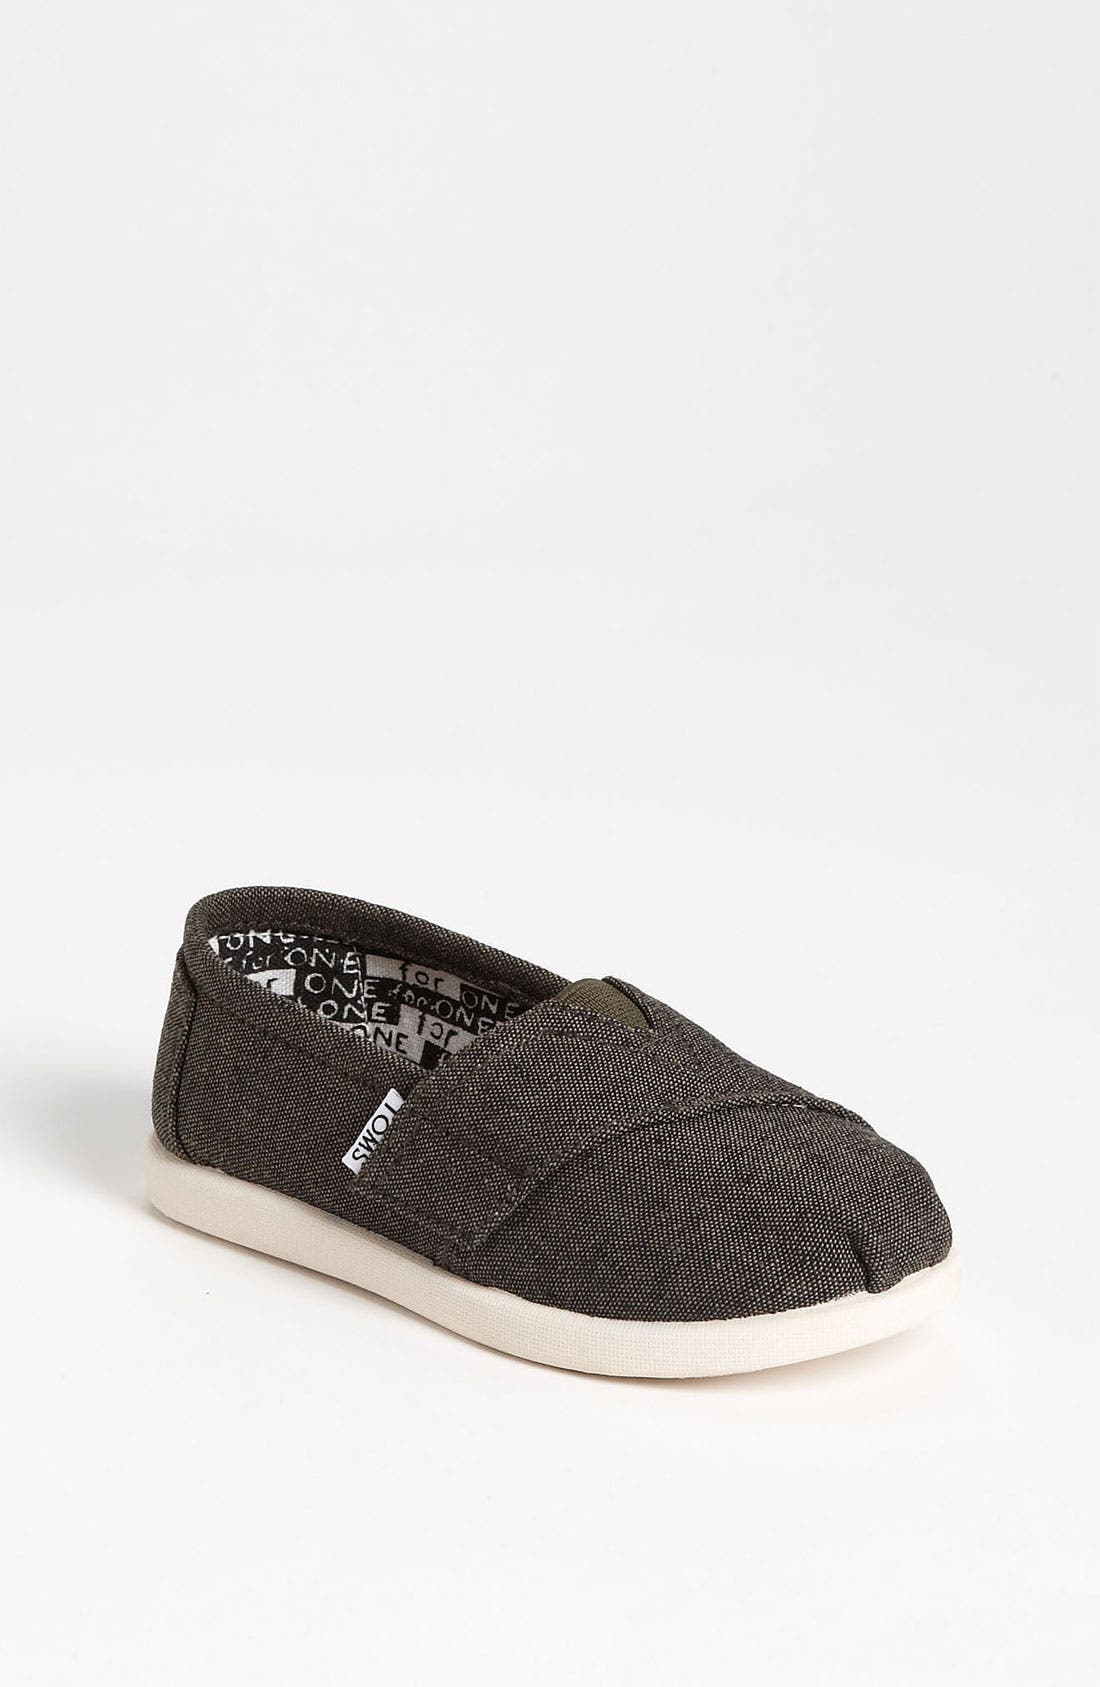 Alternate Image 1 Selected - TOMS 'Classic Tiny - Burnt' Chambray Slip-On (Baby, Walker & Toddler)